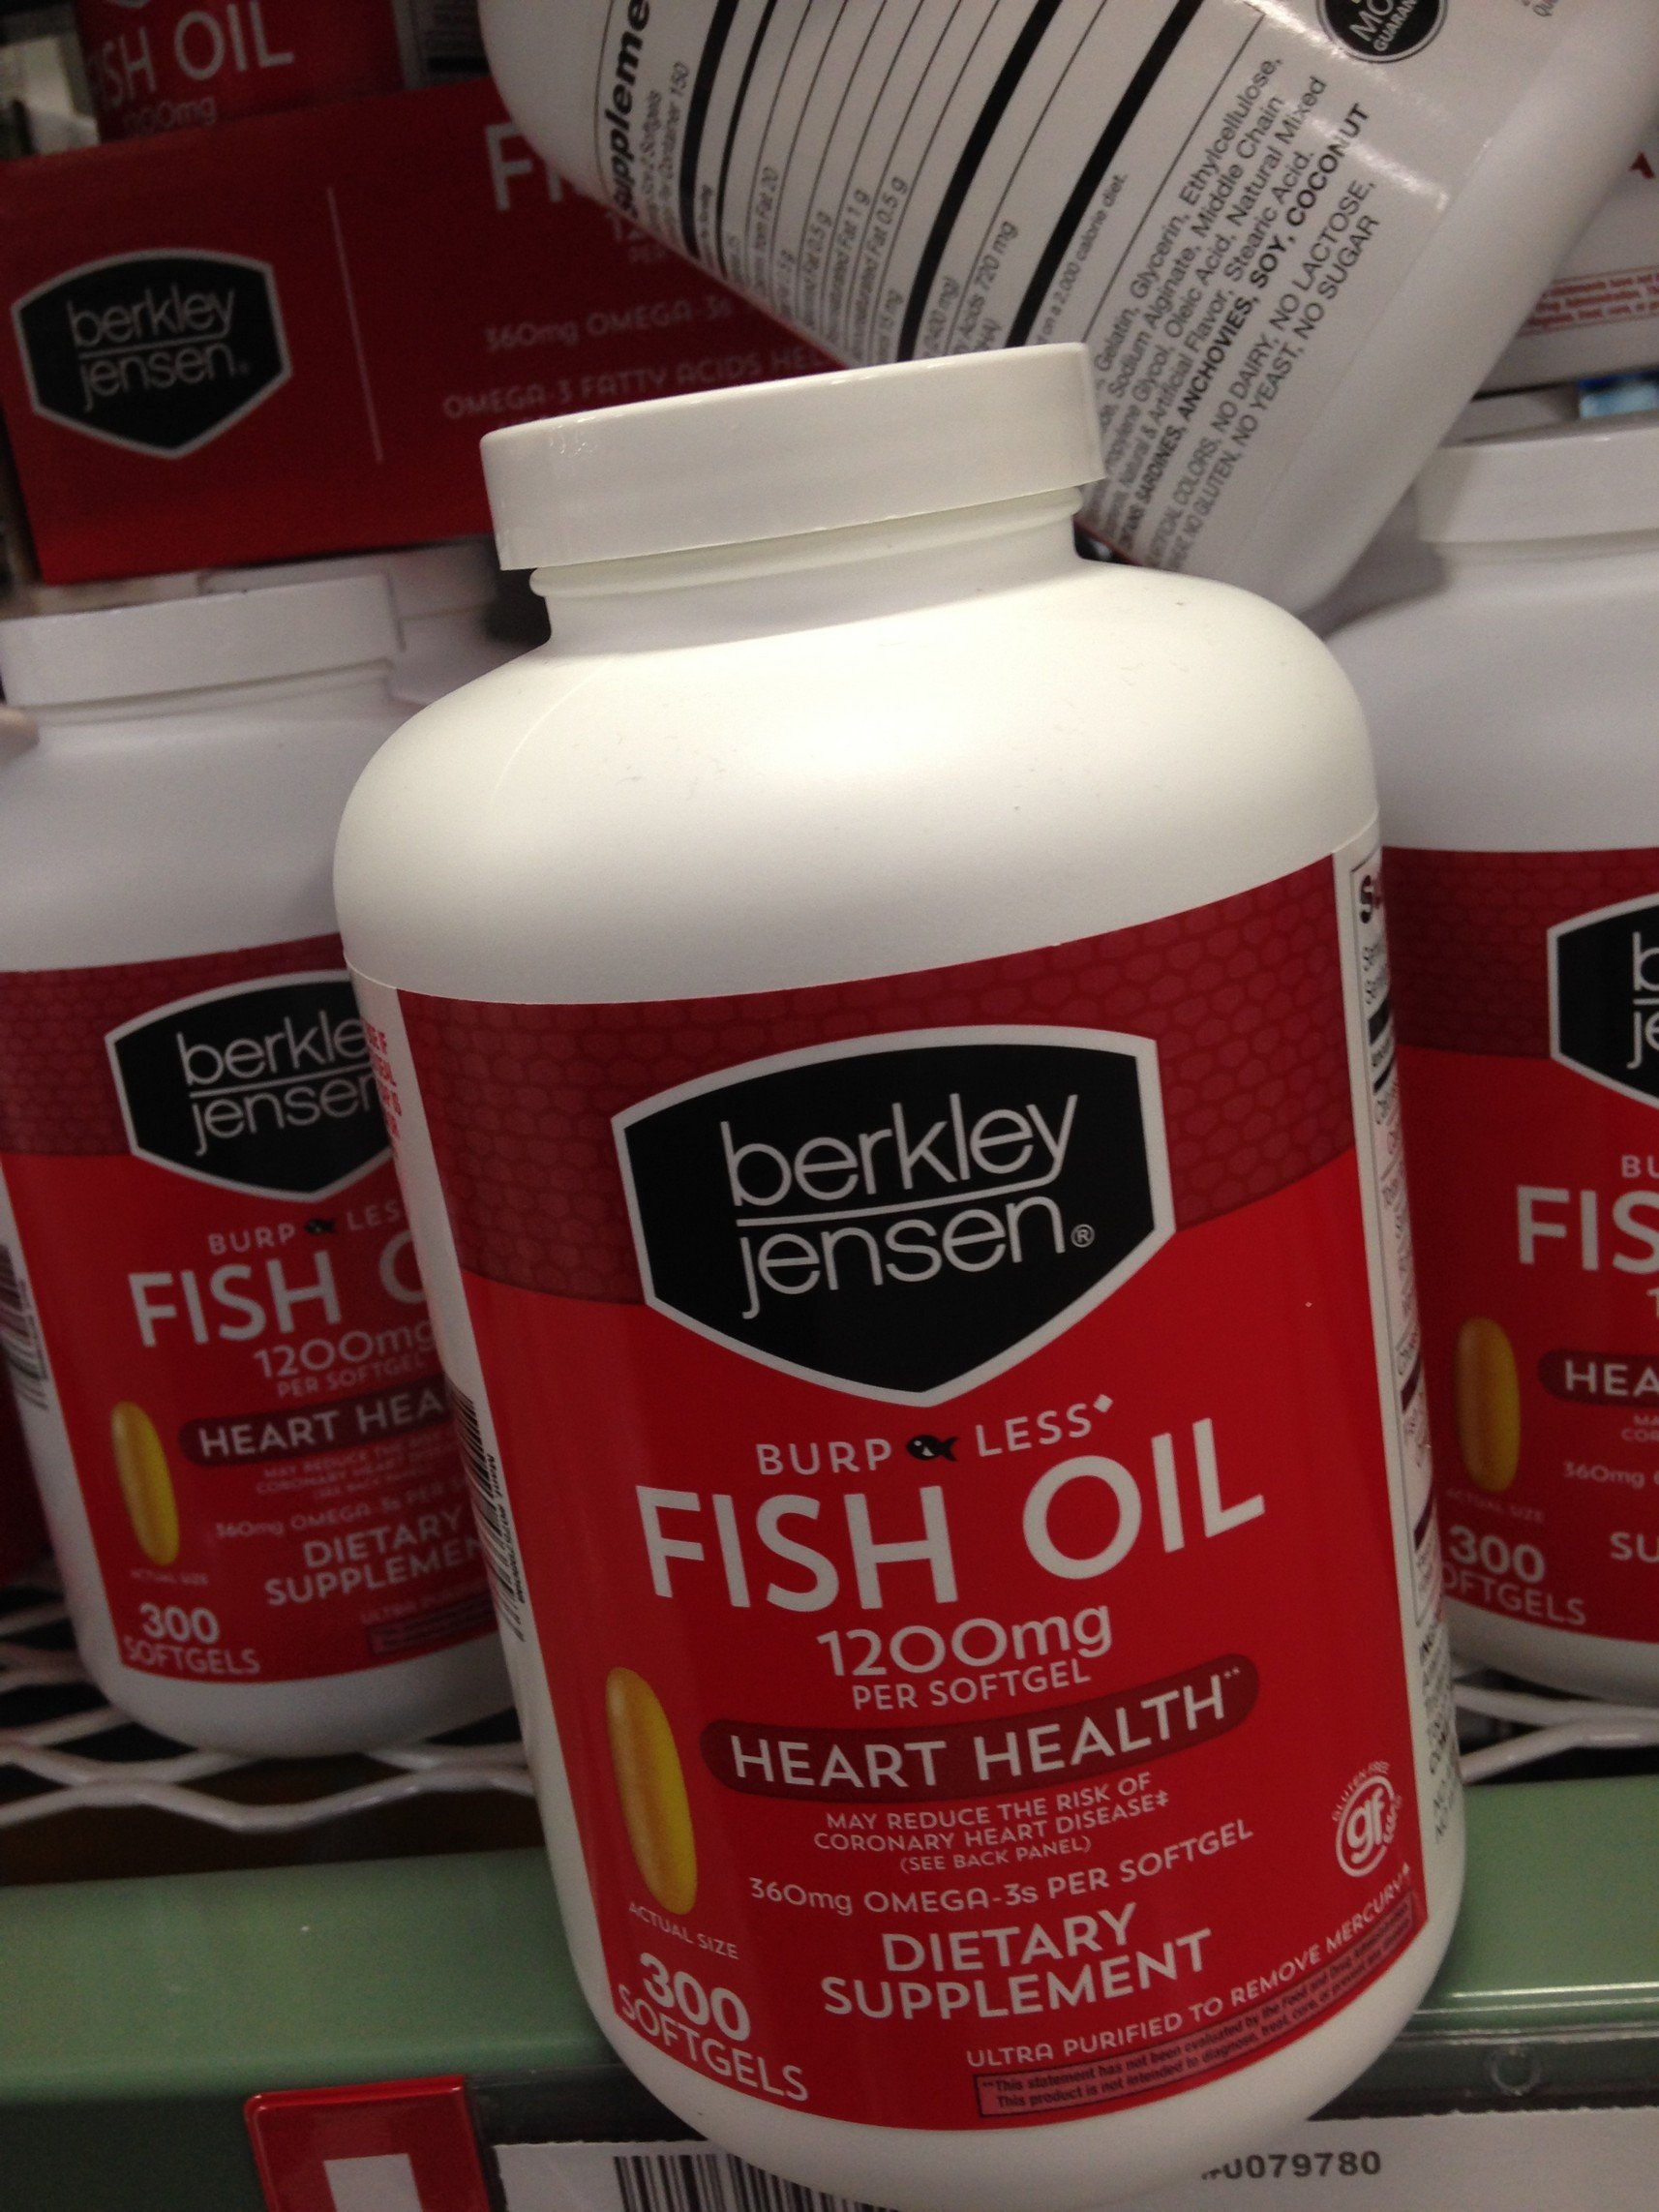 Berkley Jensen fish oil 1200 mg odorless 300 ct (pack of 6)